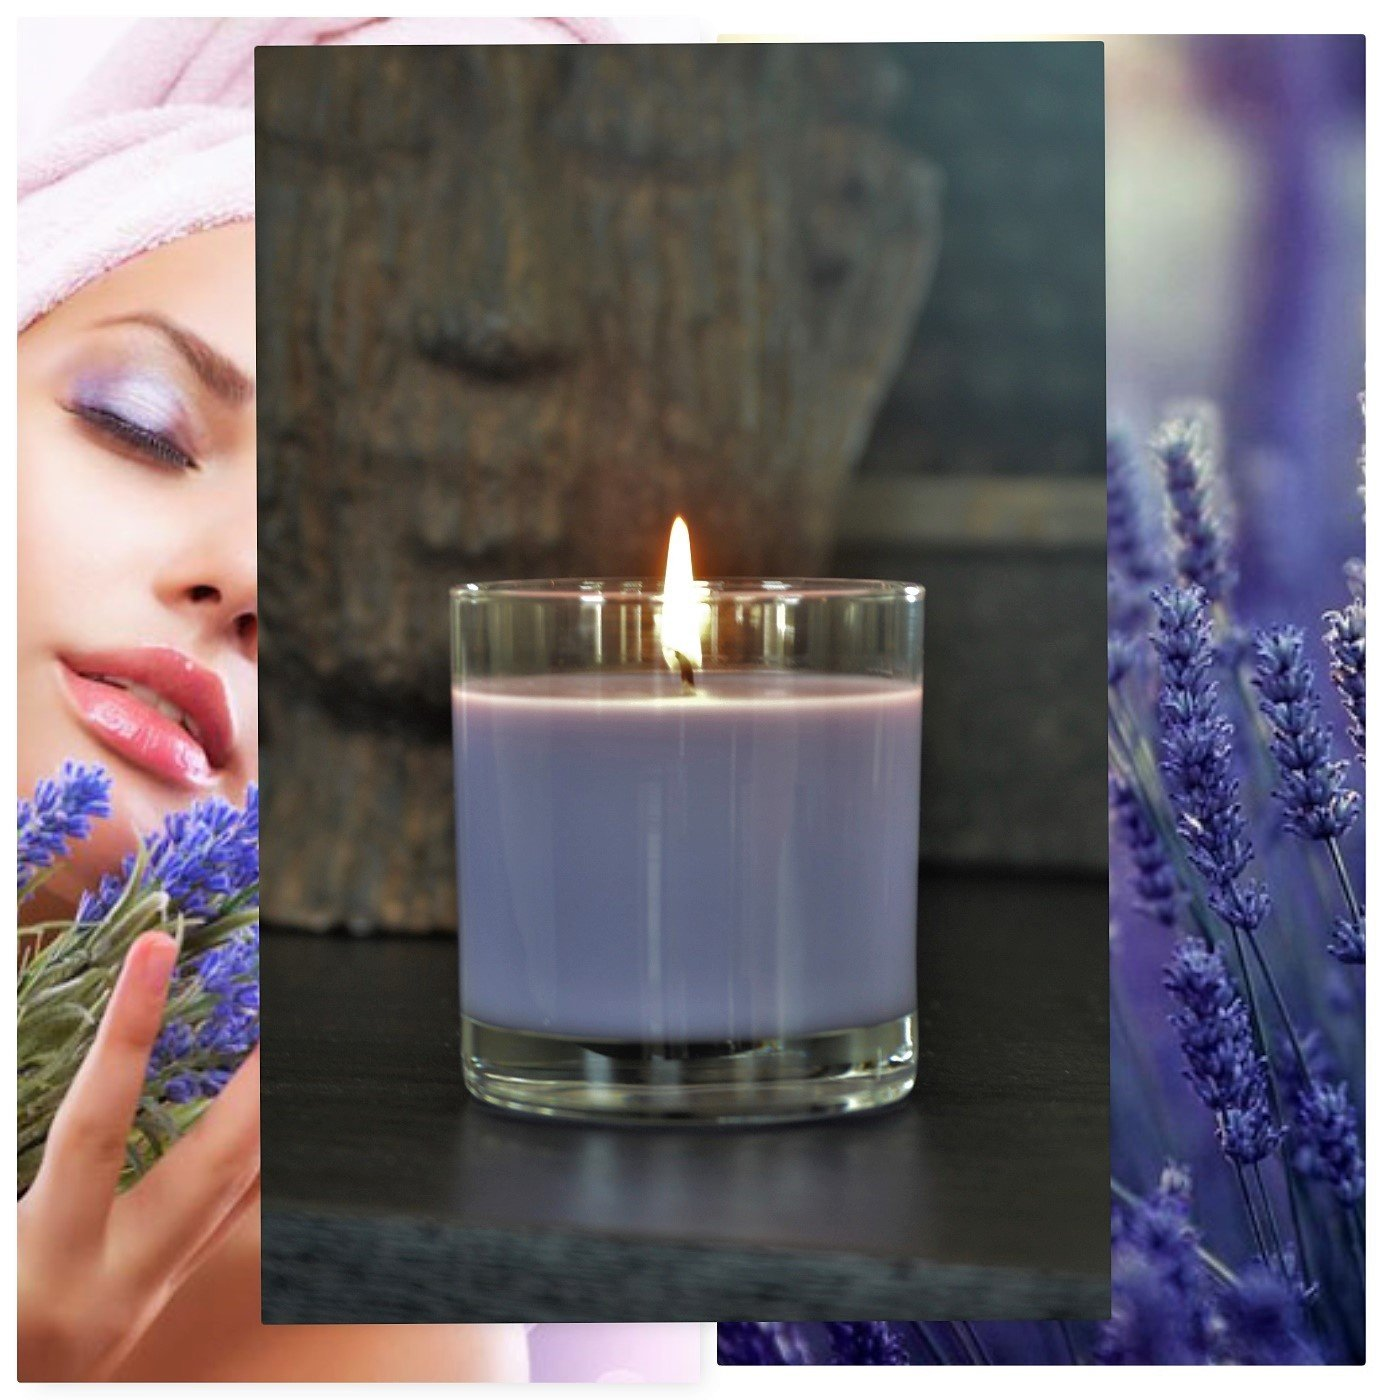 Manu Home Calm Lavender Scented Aromatherapy Candle ~ Made Aromatherapy Oils for Relaxation ~Natural Wax~ Packed in a Beautiful Gift Box ~ 7.5 oz